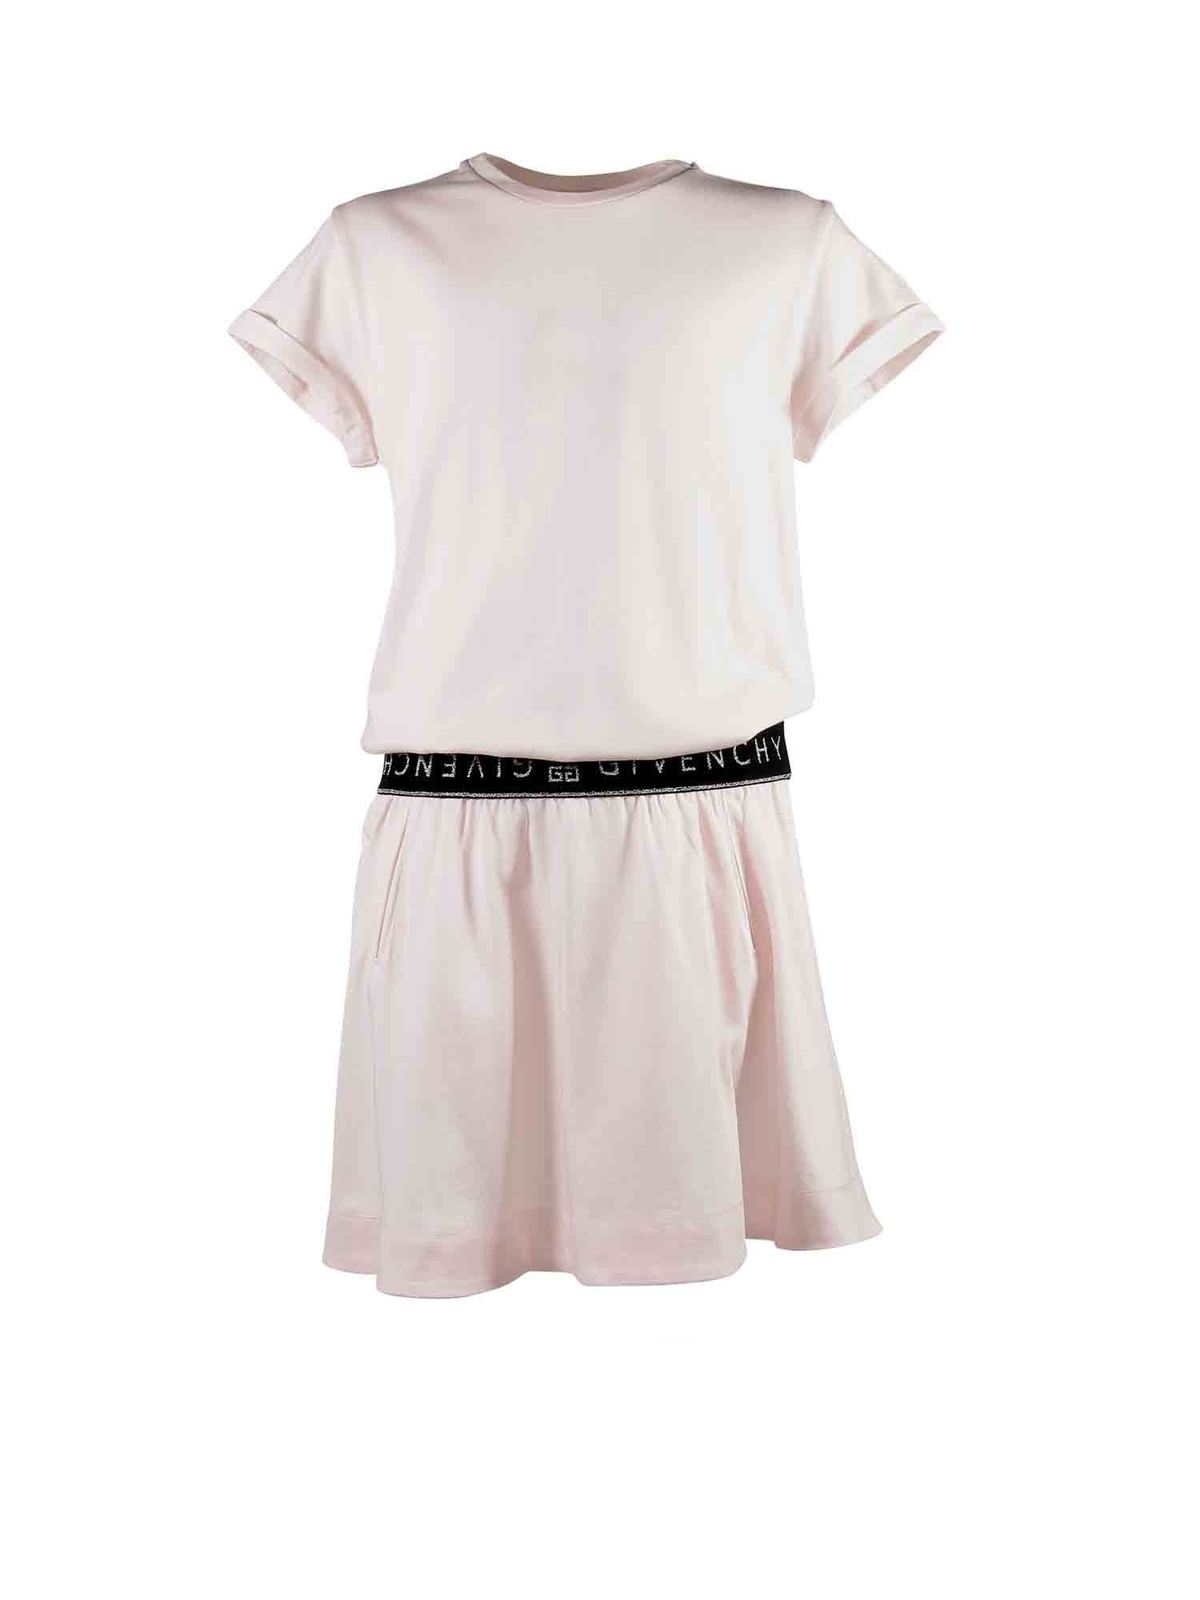 Givenchy Kids' Branded Waistband Dress In Pink